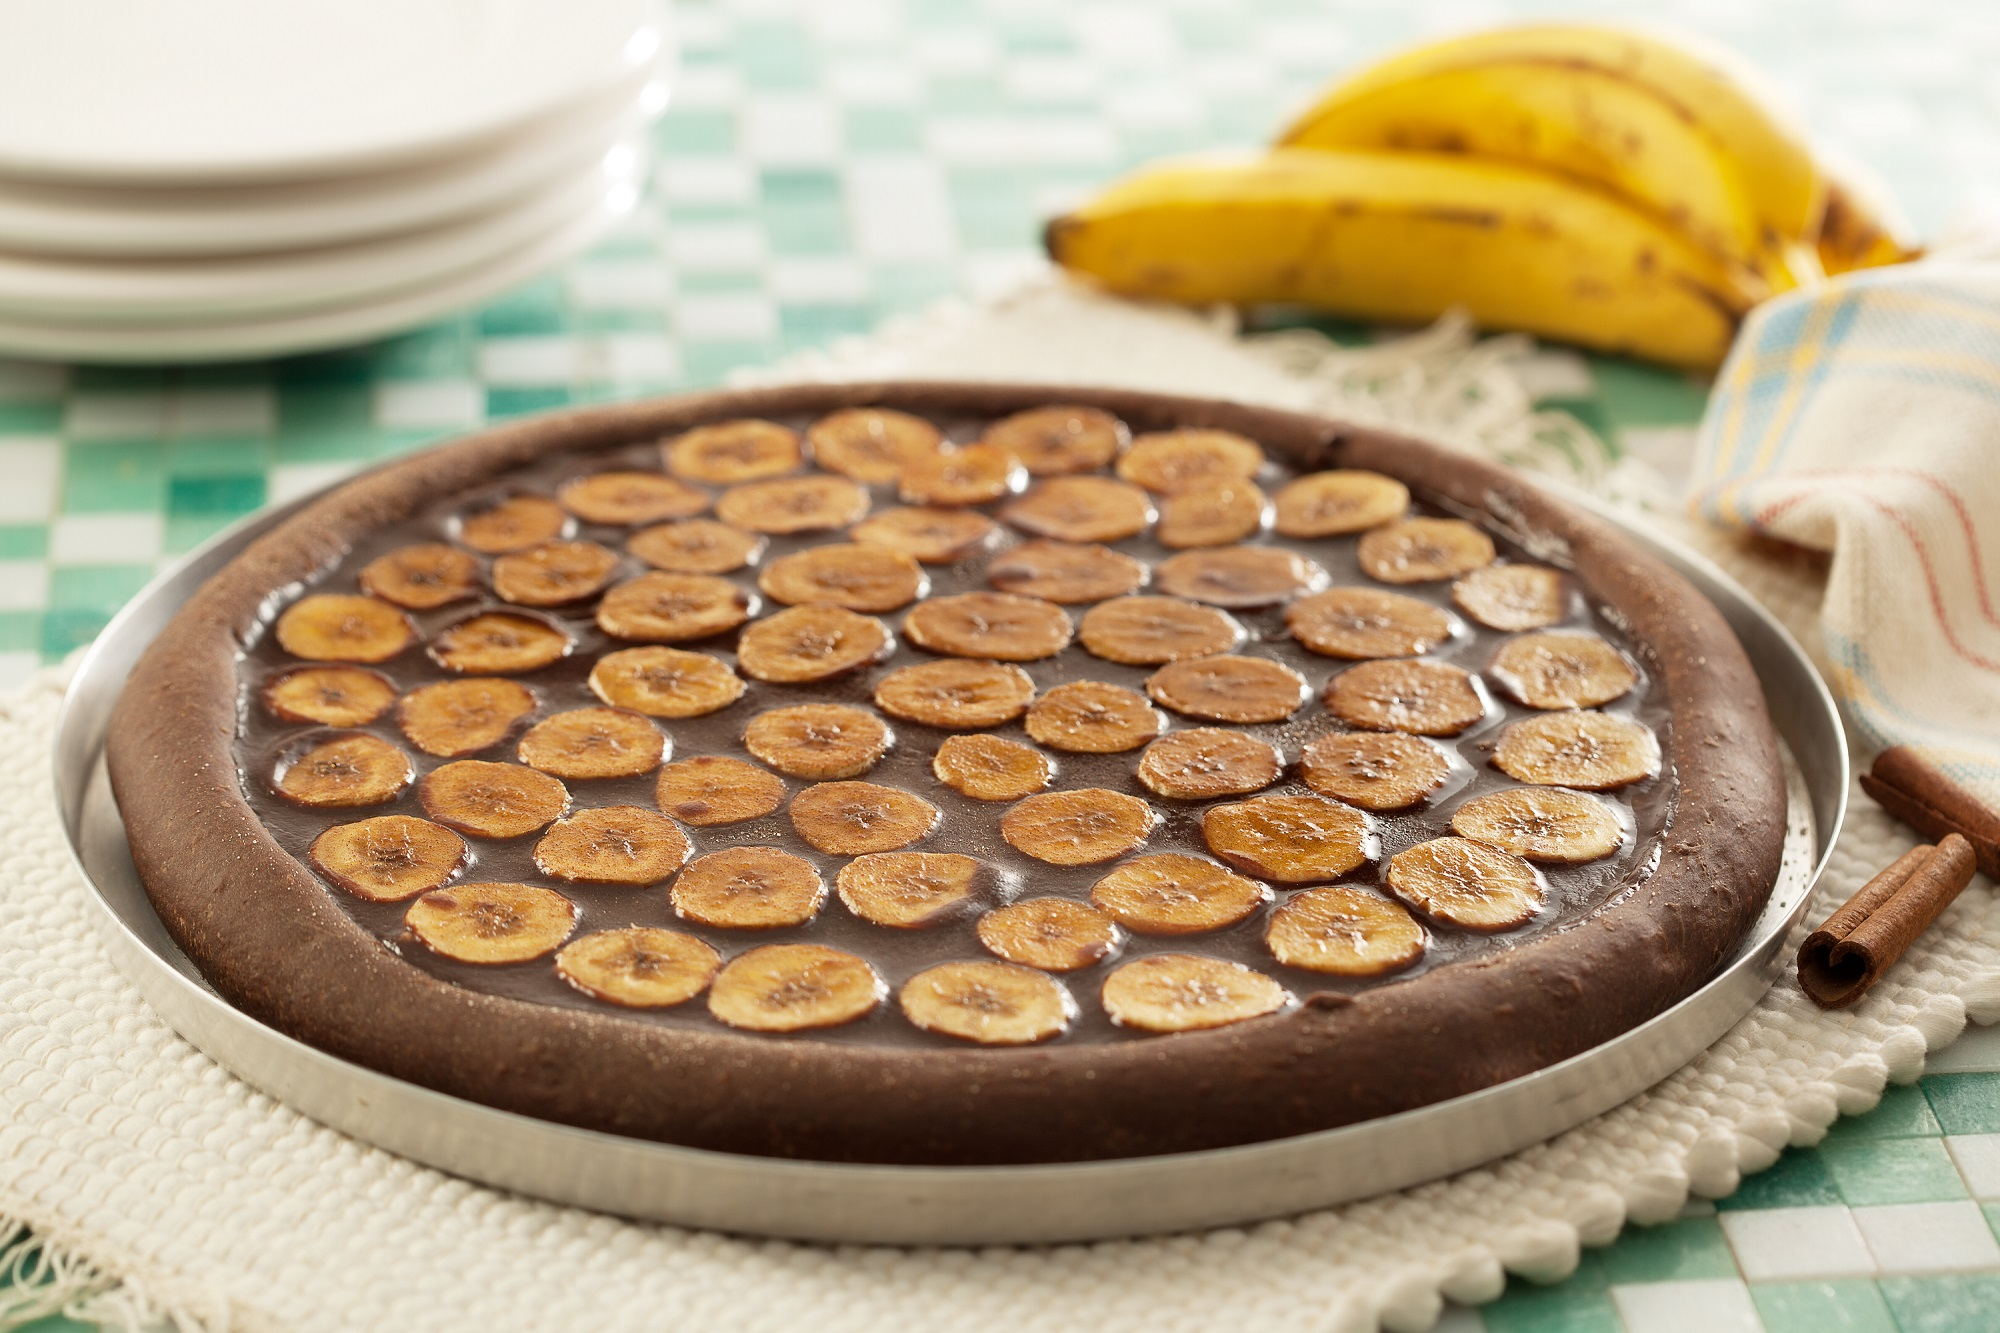 pizza de banana com chocolate1